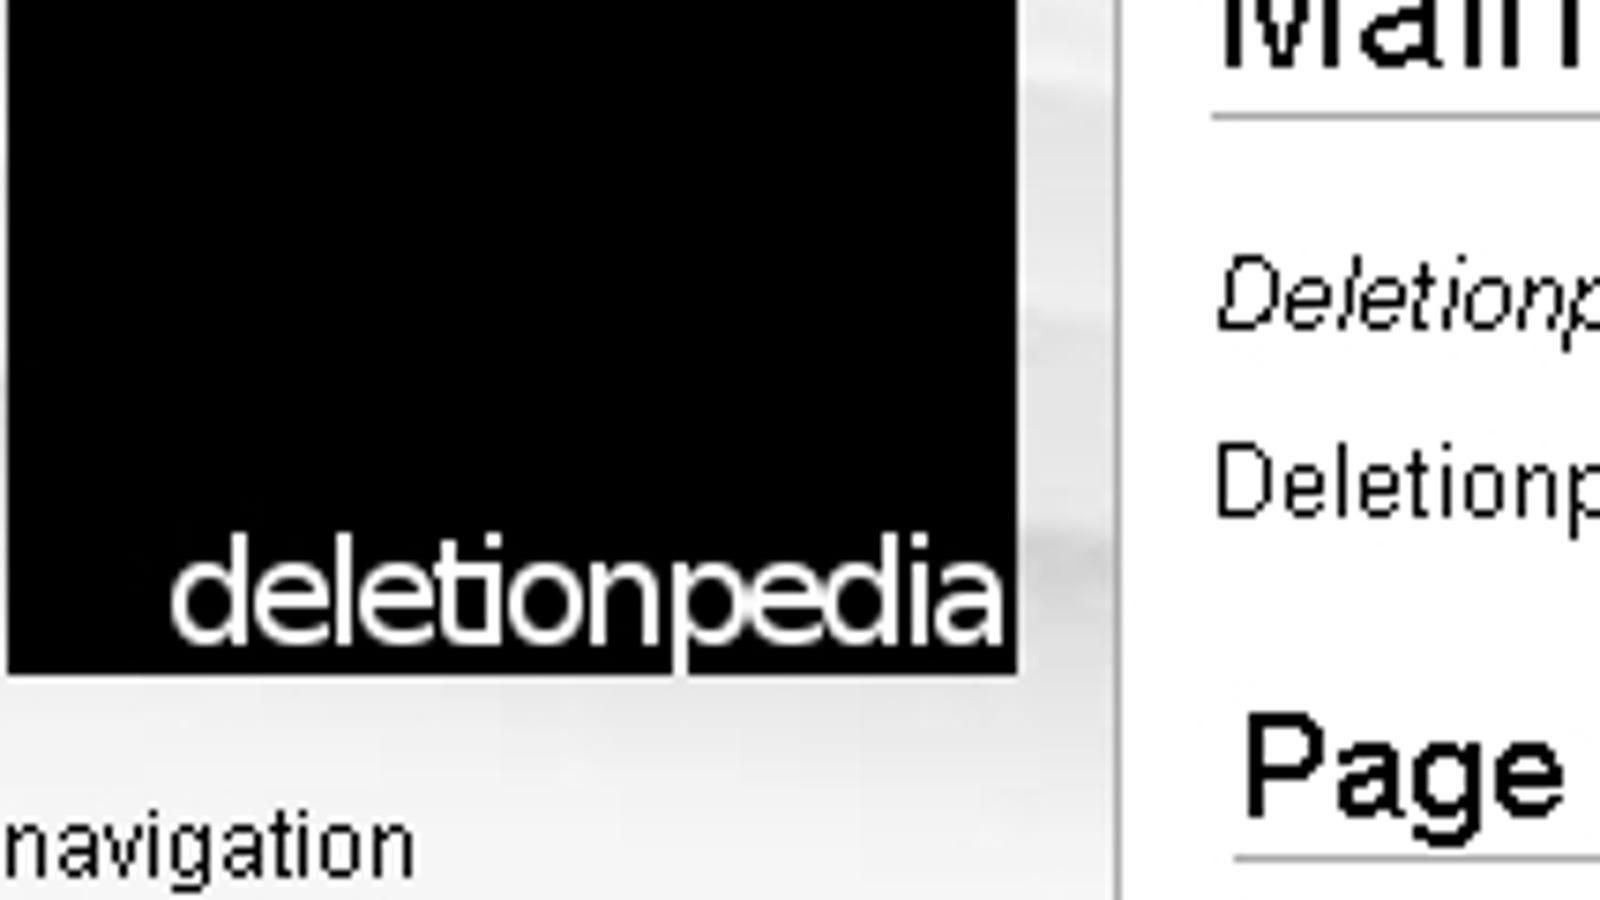 DeletionPedia Compiles Deleted...